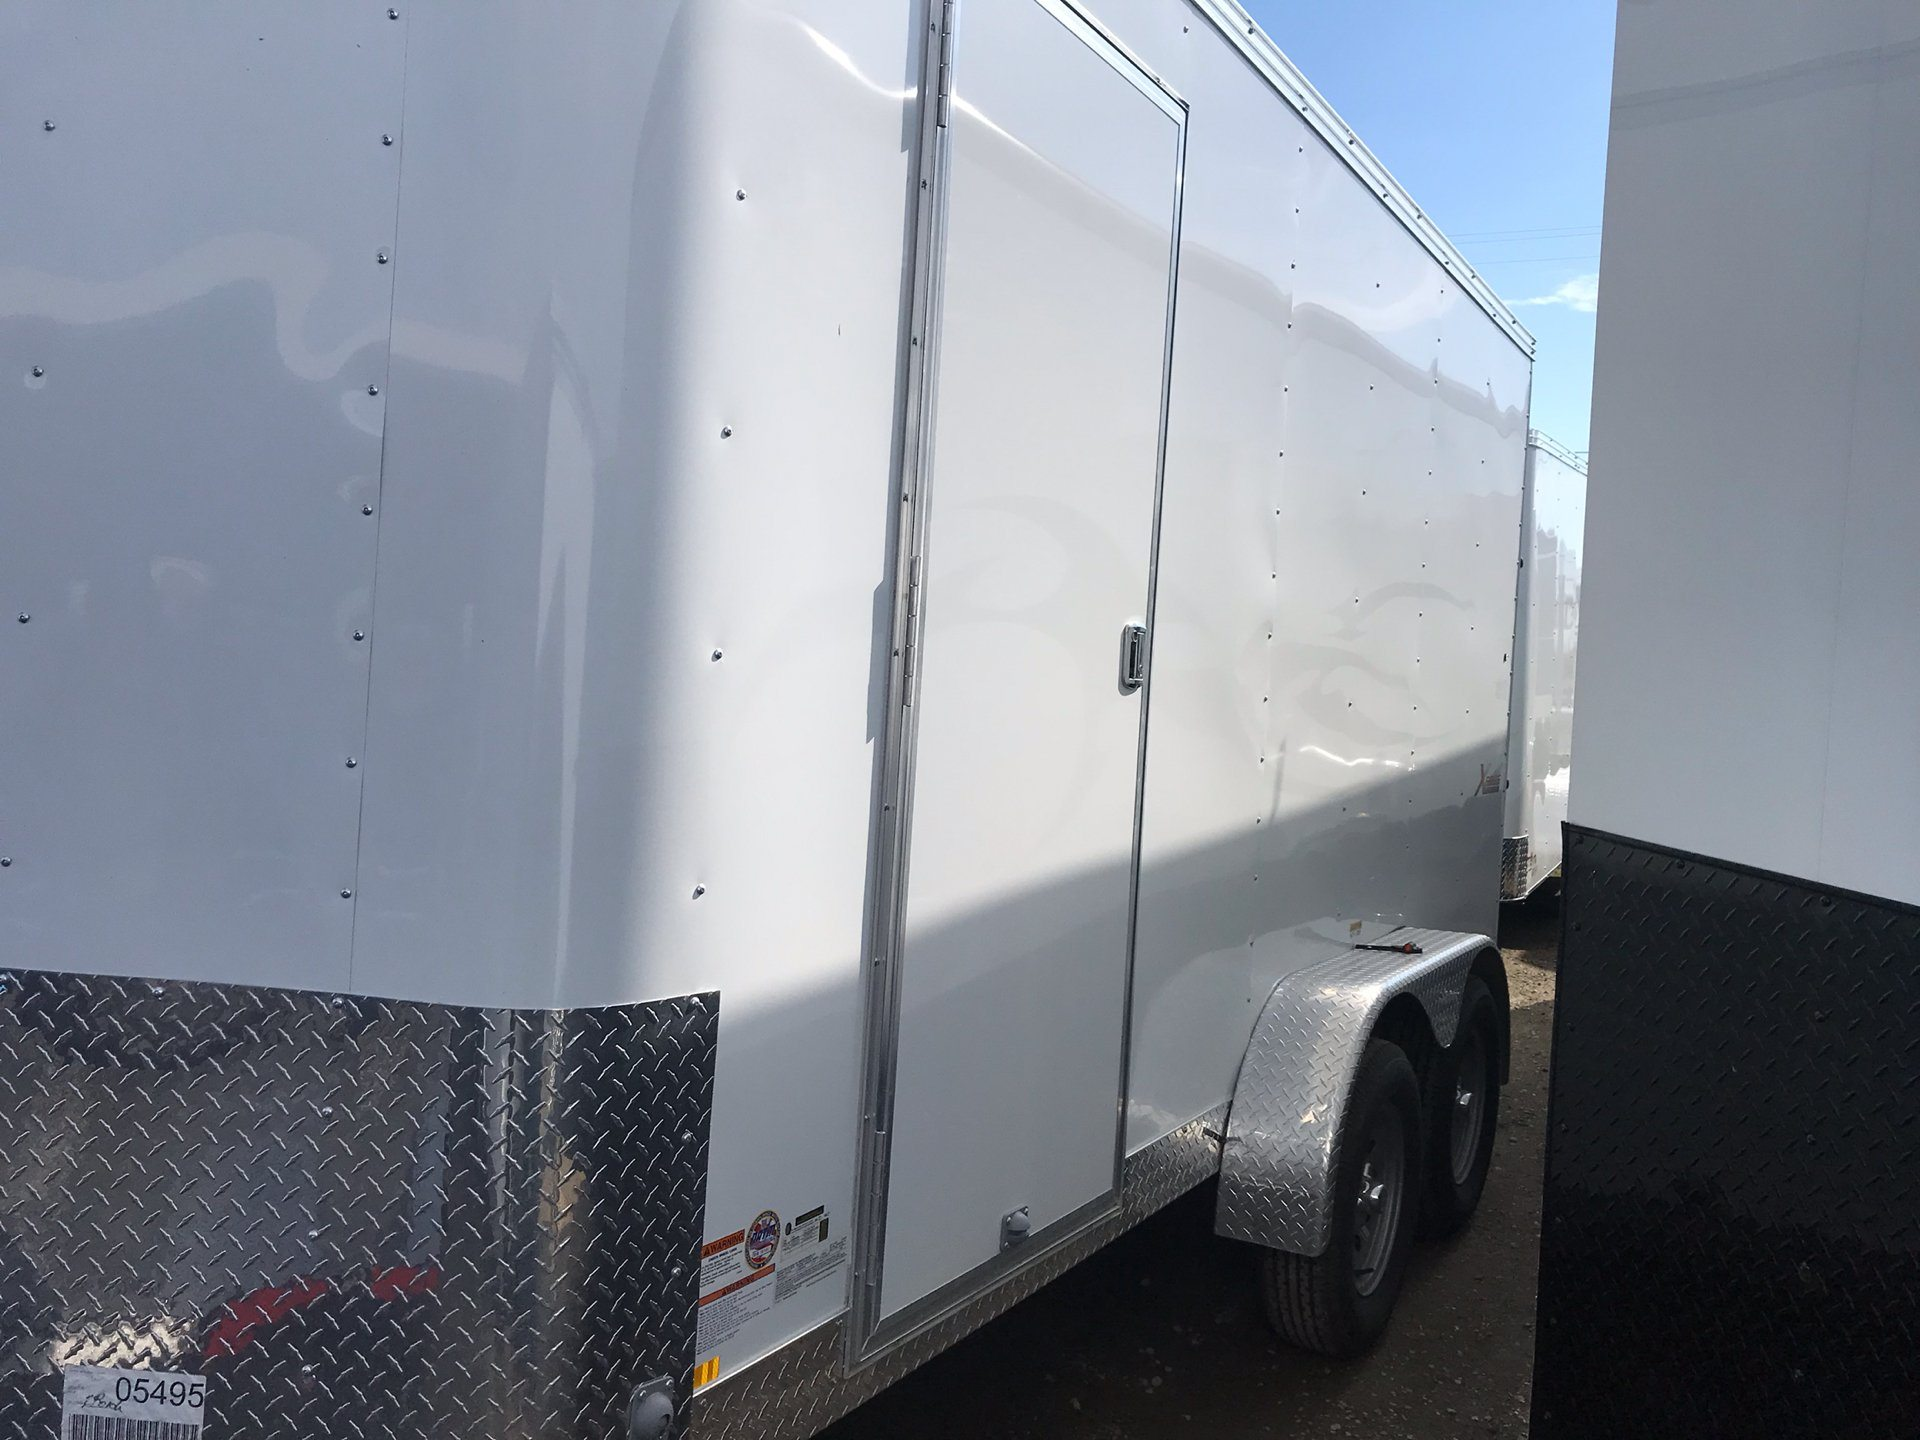 2019 TNT Trailer, LLC 14' X 7' TA CARGO TRAILER in Elk Grove, California - Photo 3